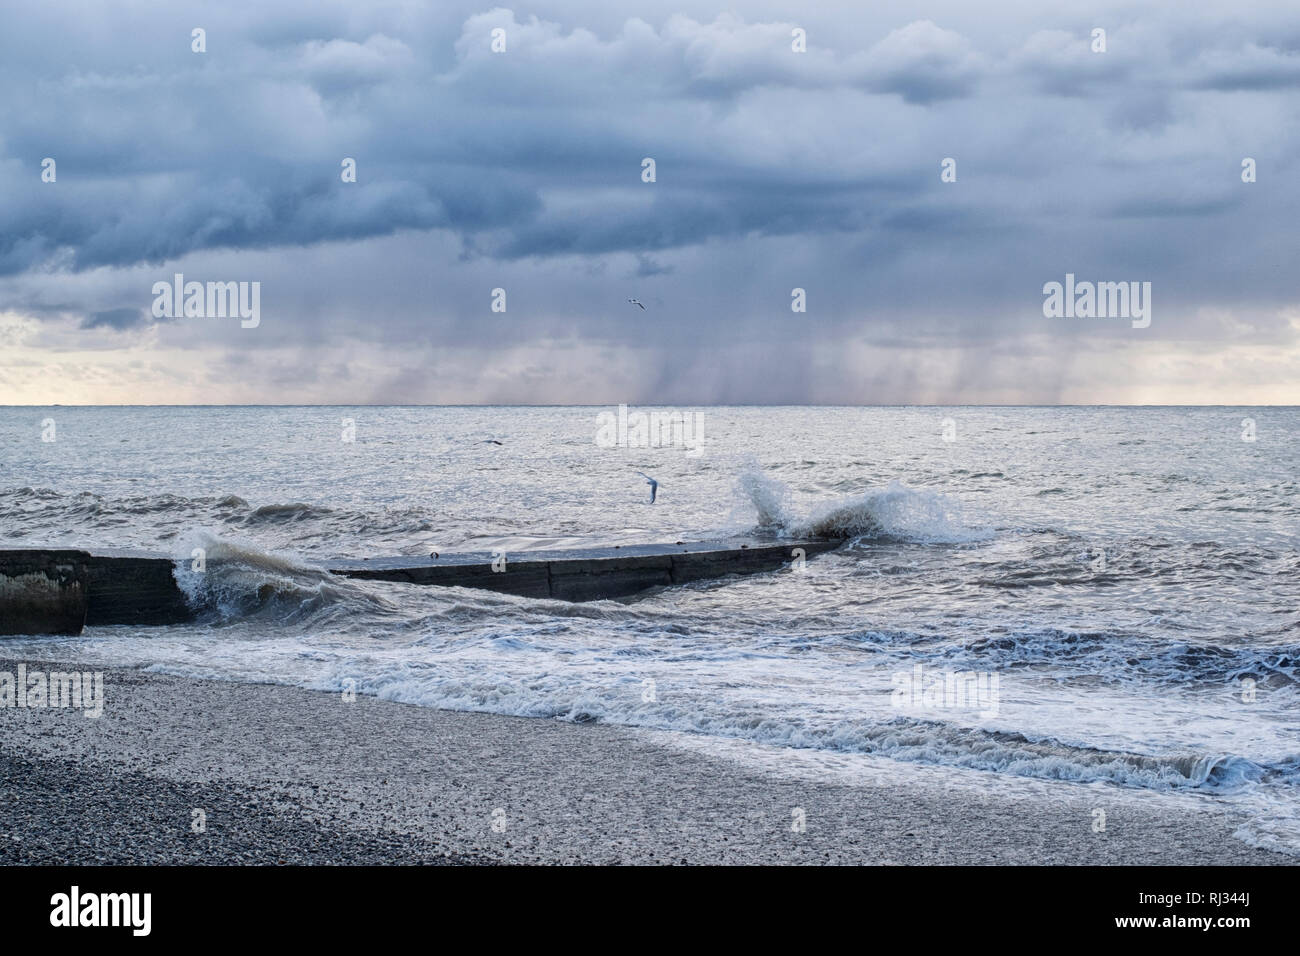 Seascape with a concrete pier during a storm in the rain with flying seagulls Stock Photo